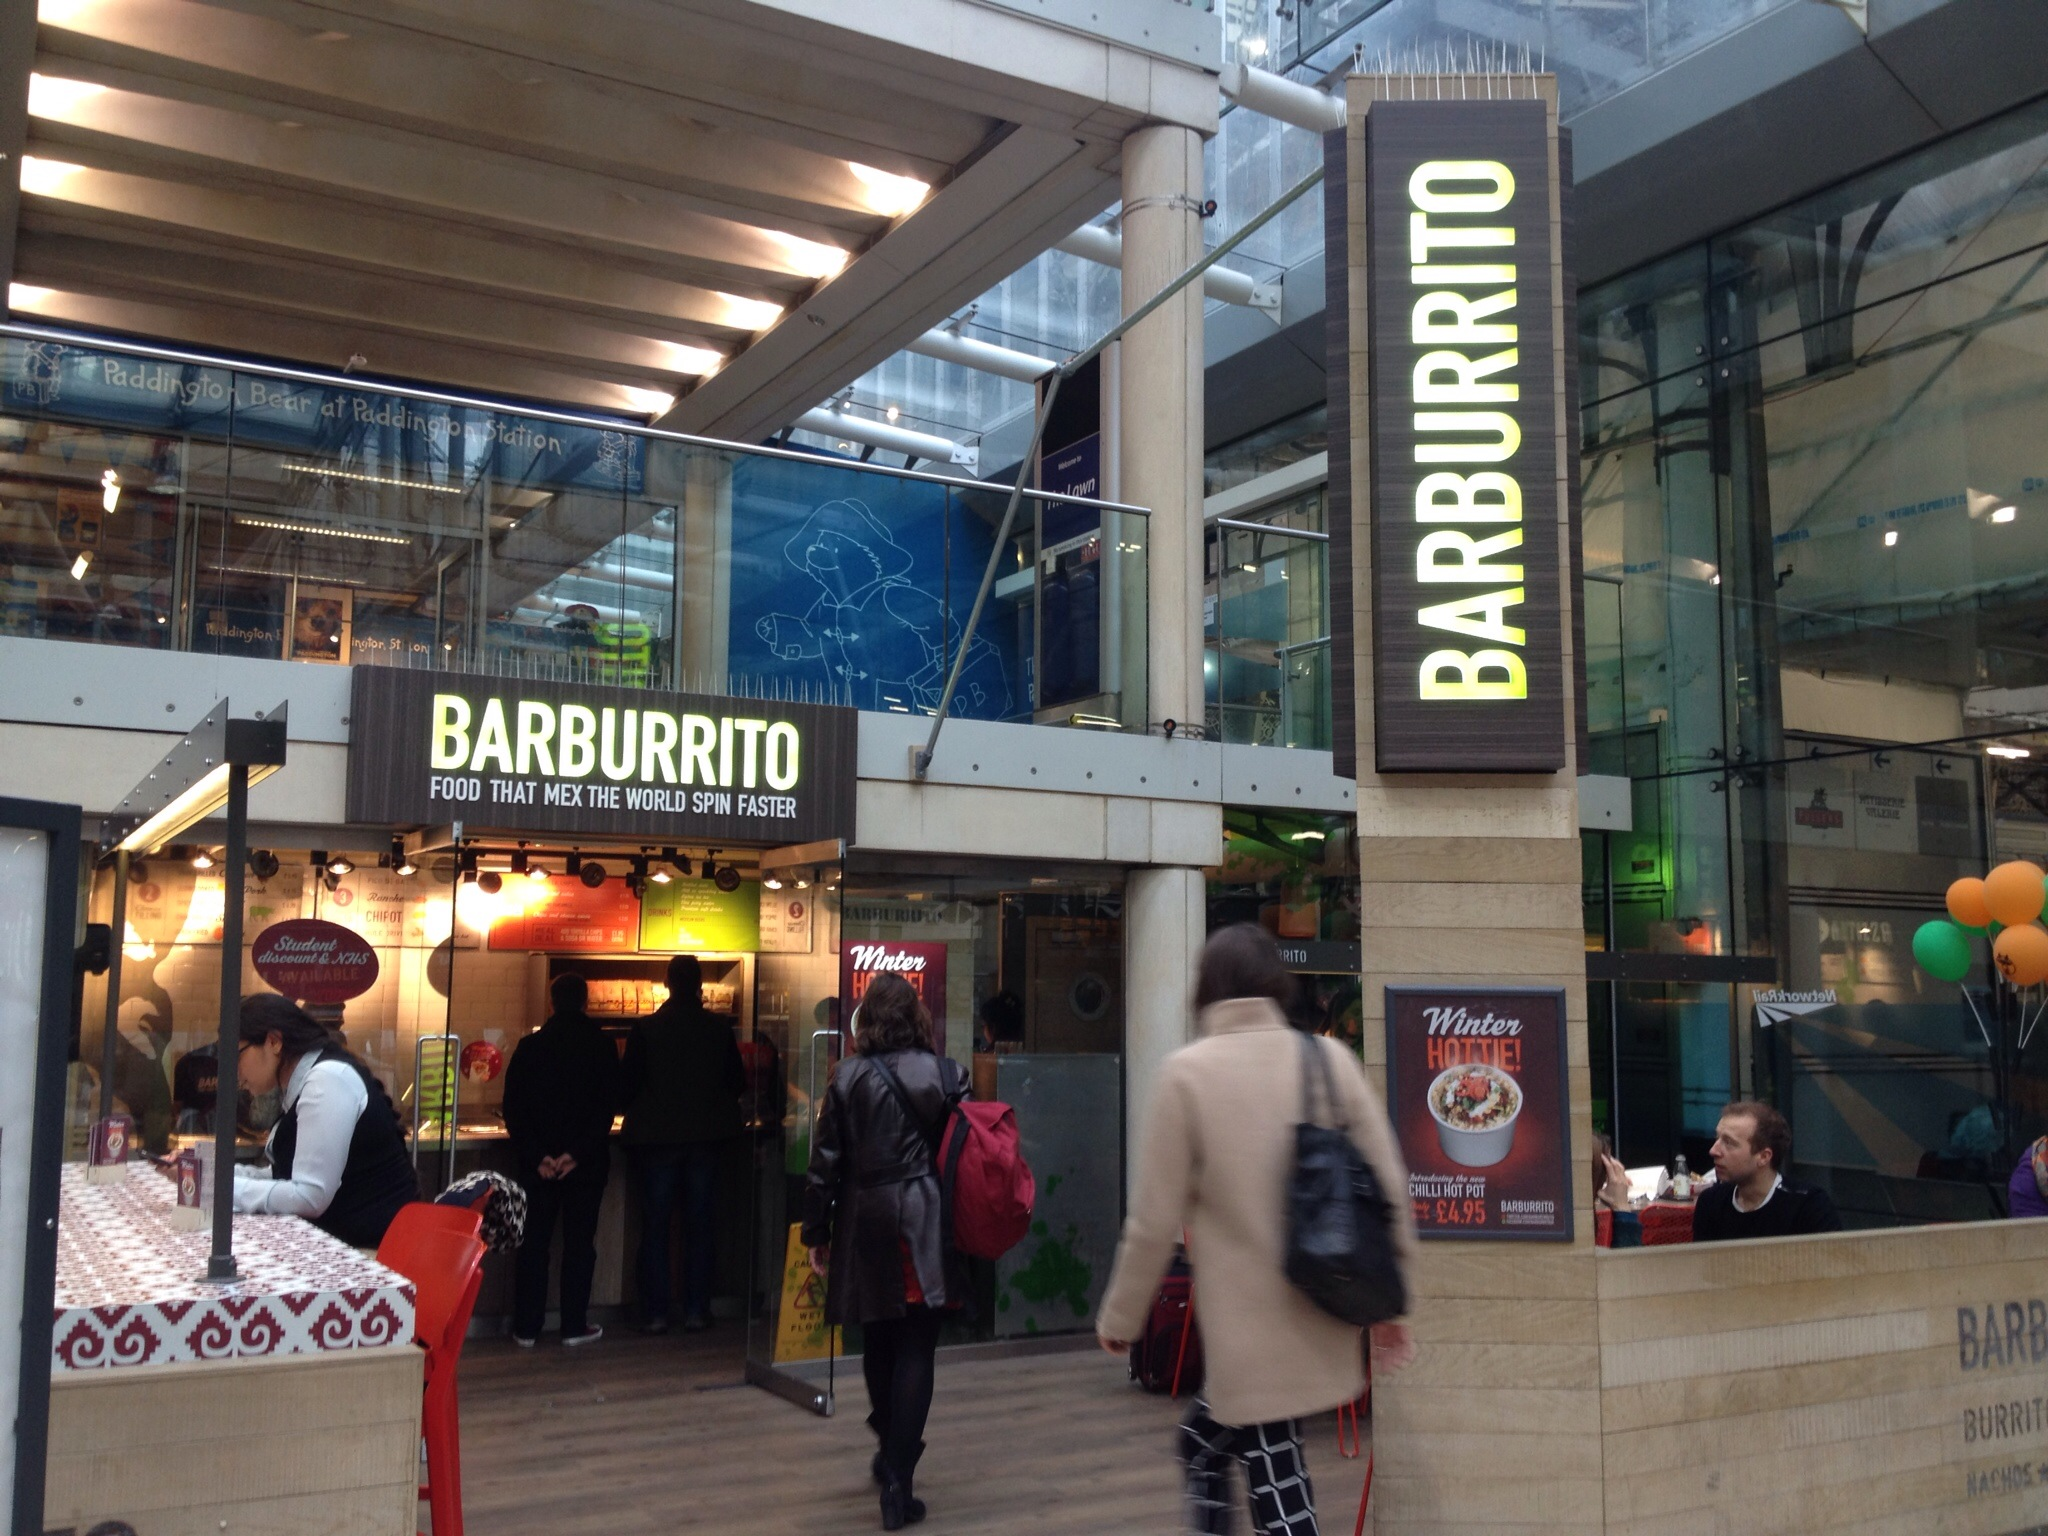 Barburrito Paddington Station